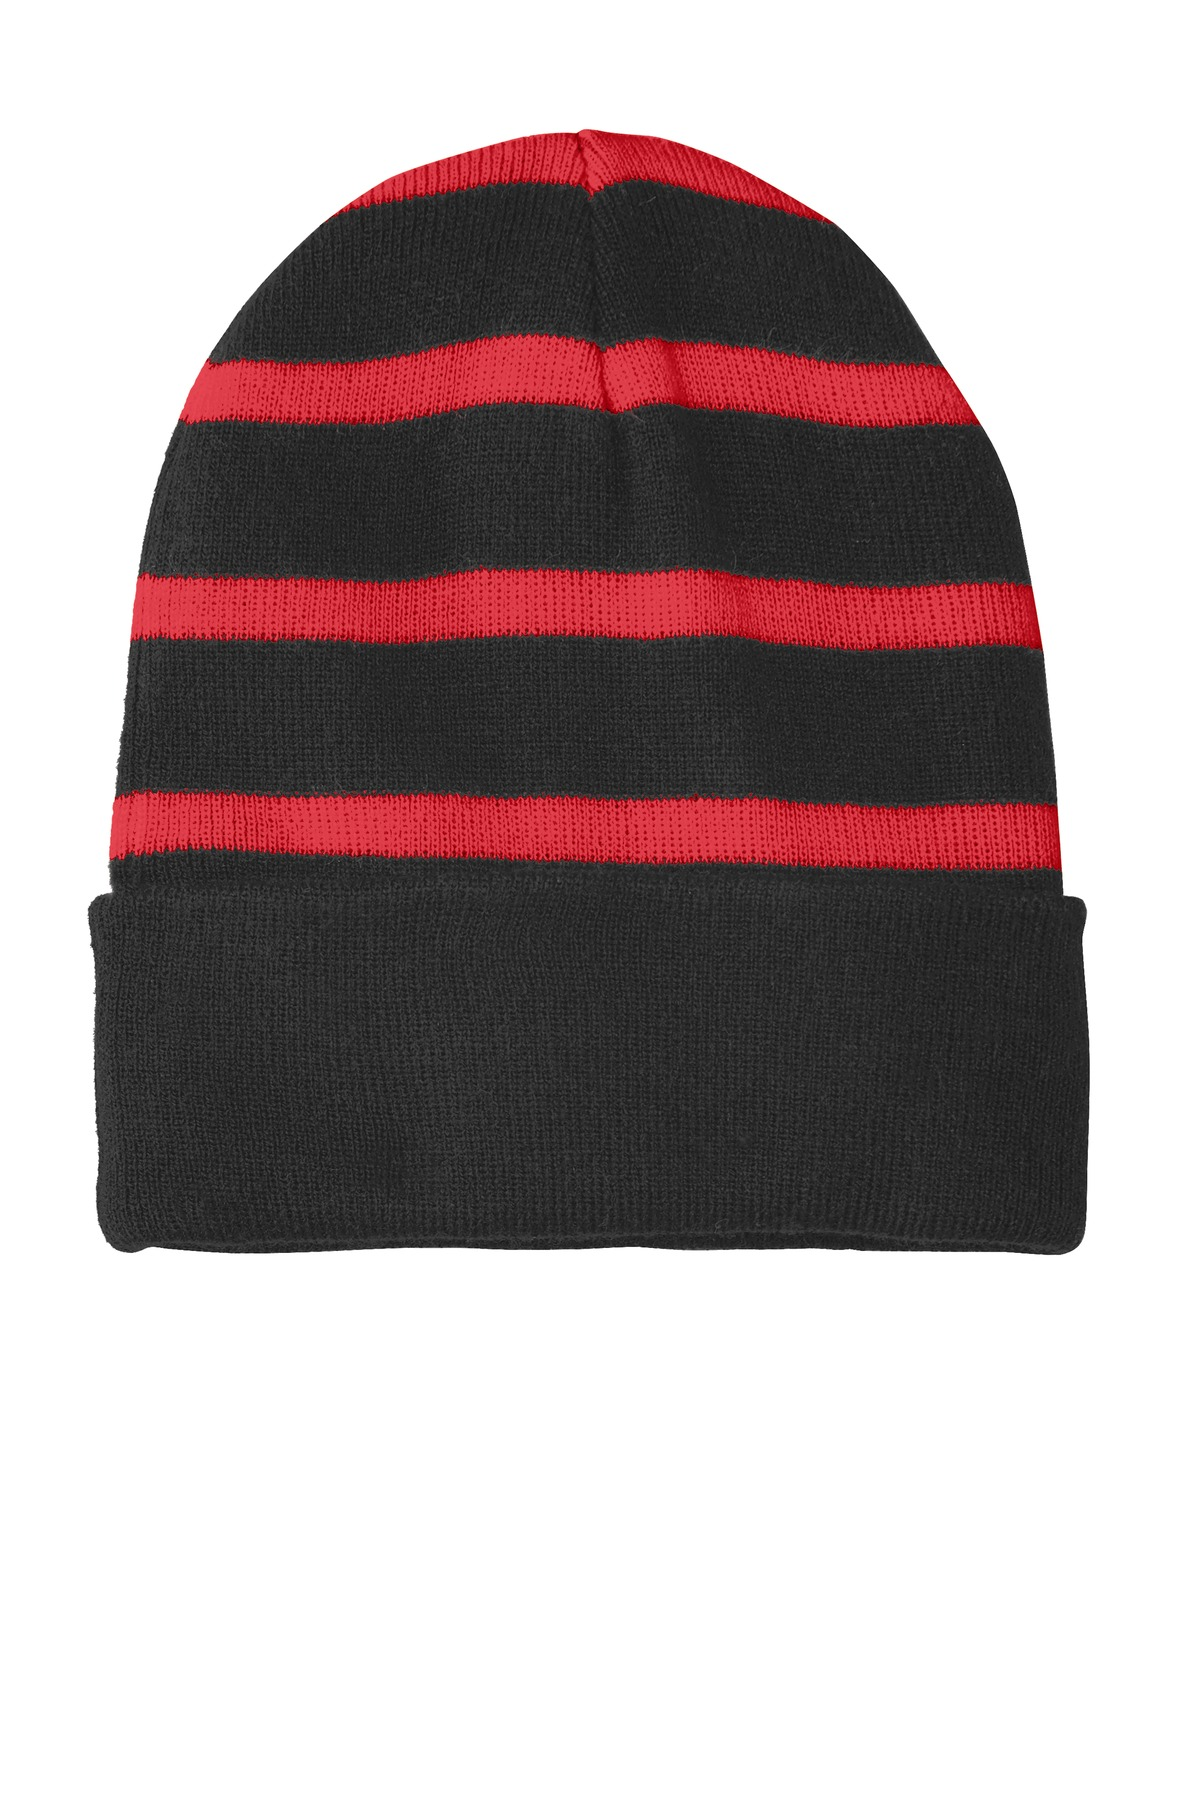 Sport-Tek ®  Striped Beanie with Solid Band. STC31 - Black/ True Red